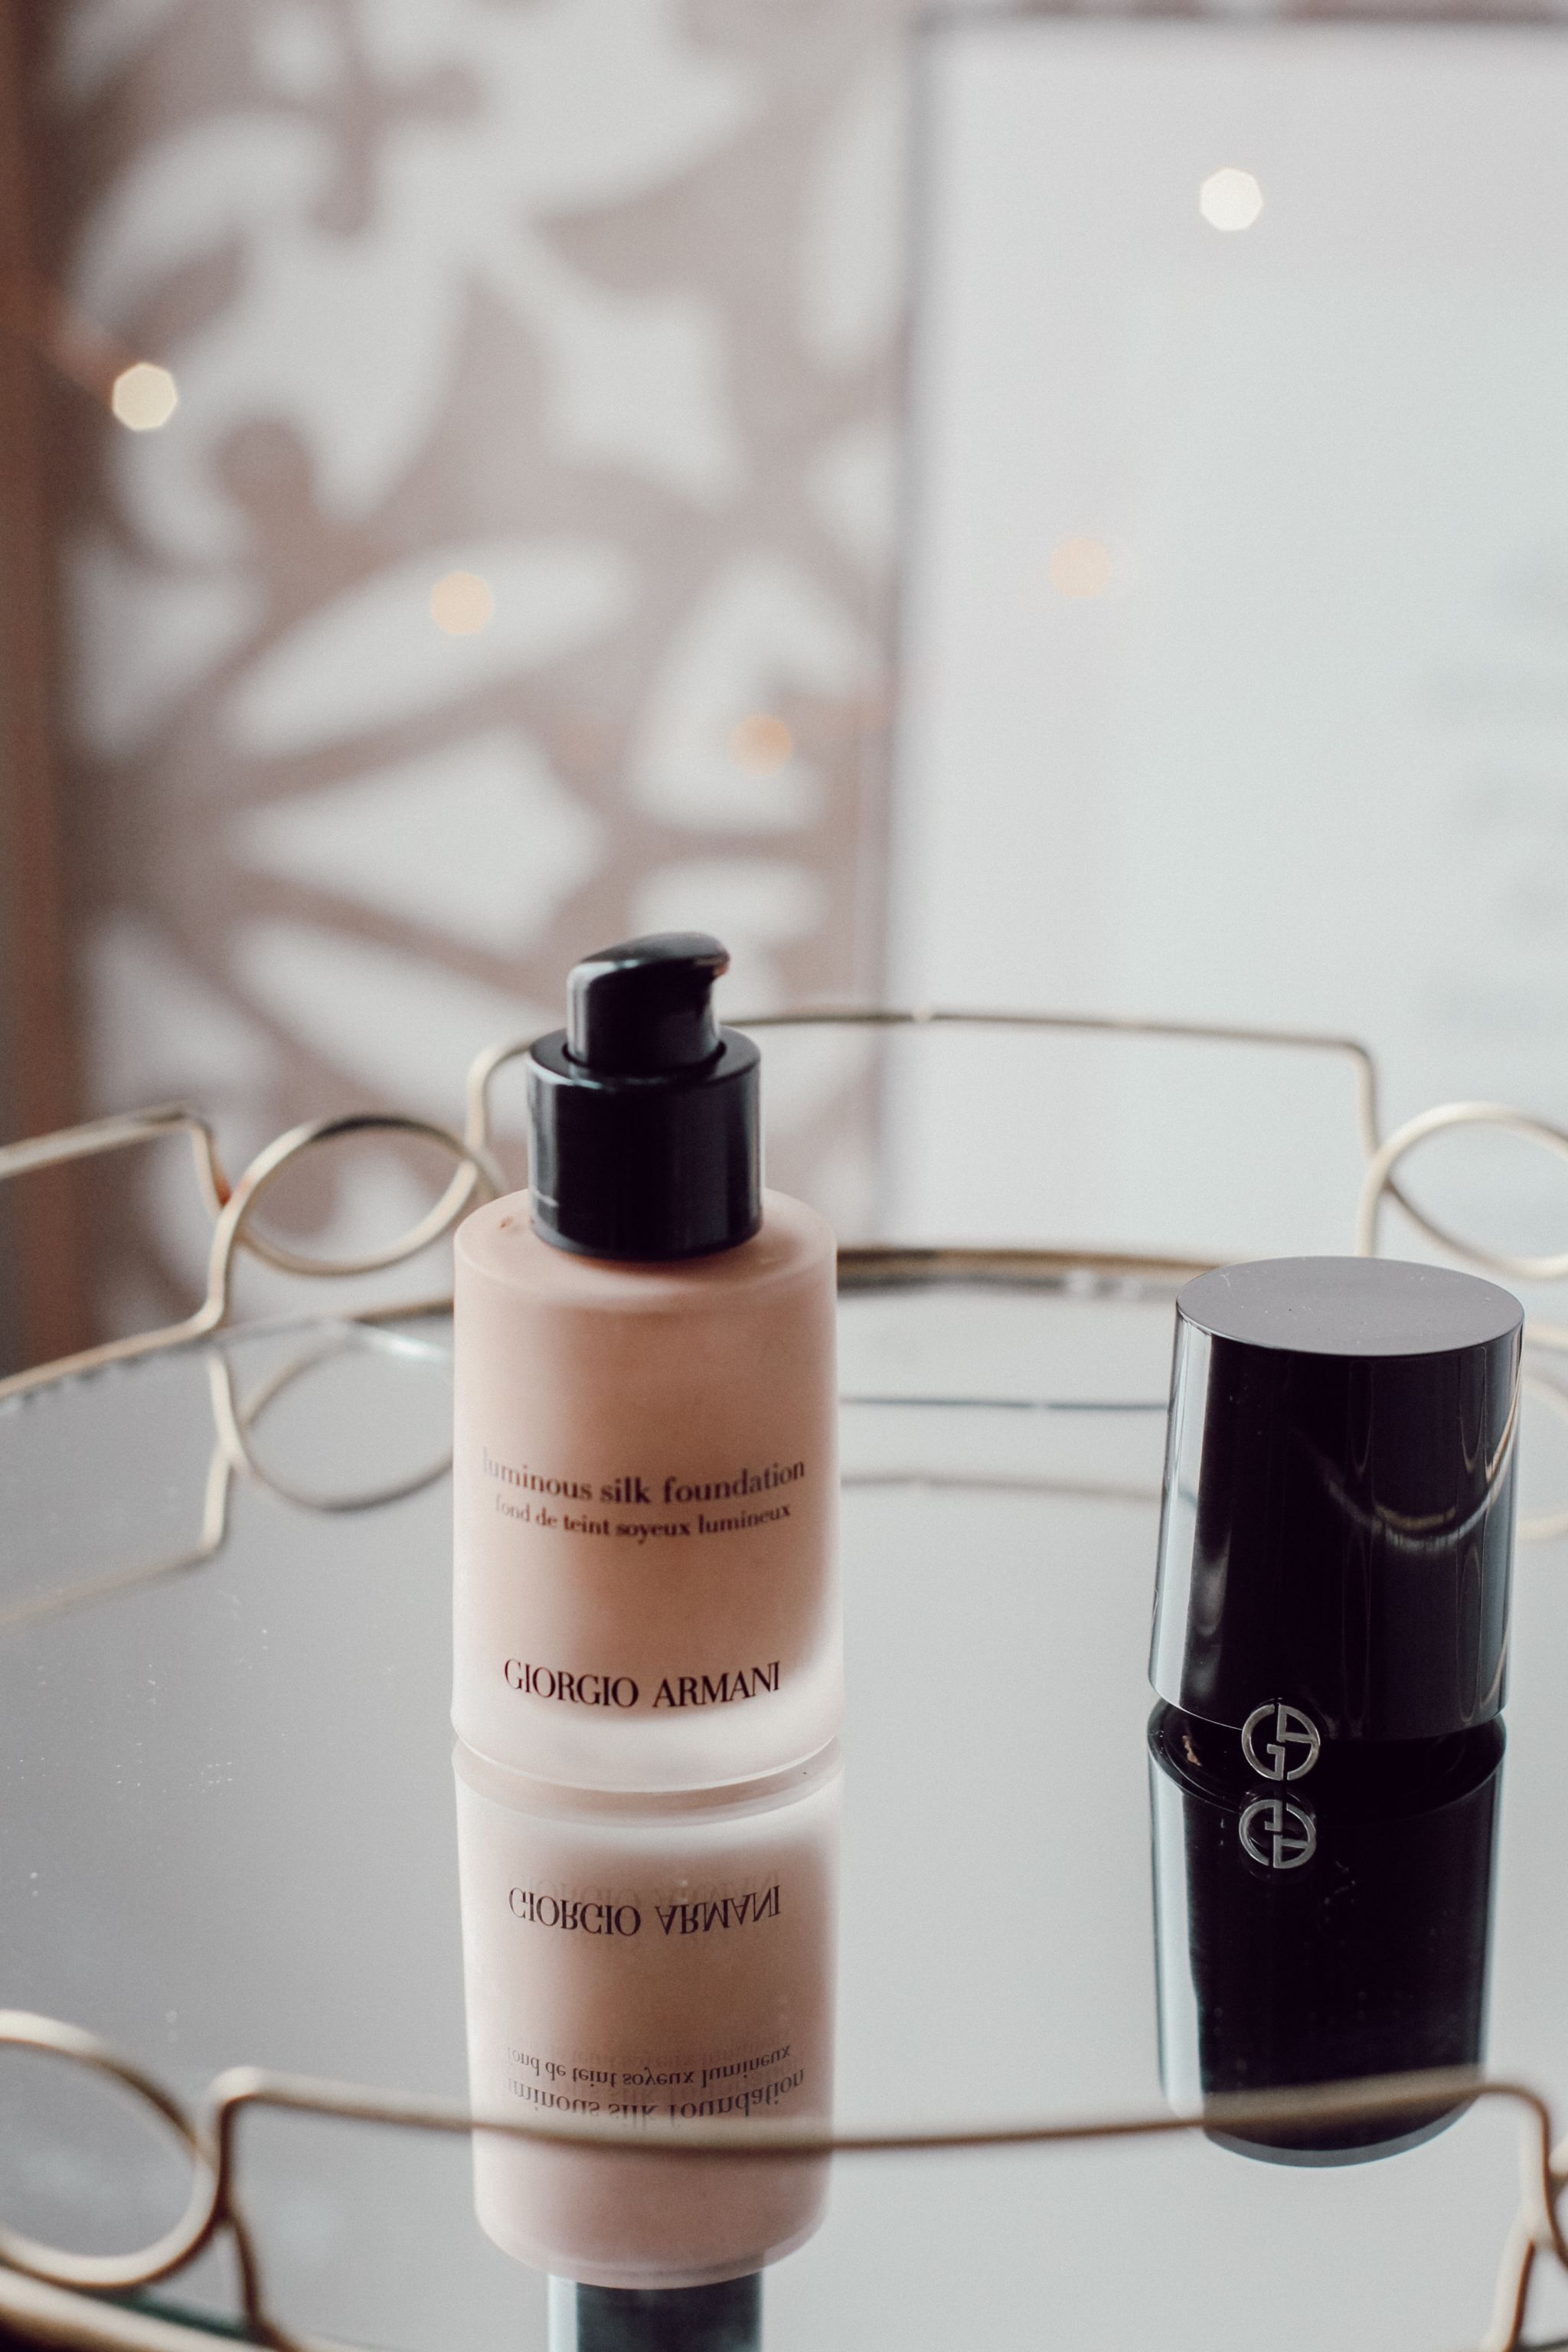 Giorgio armani silk luminous teint parfait